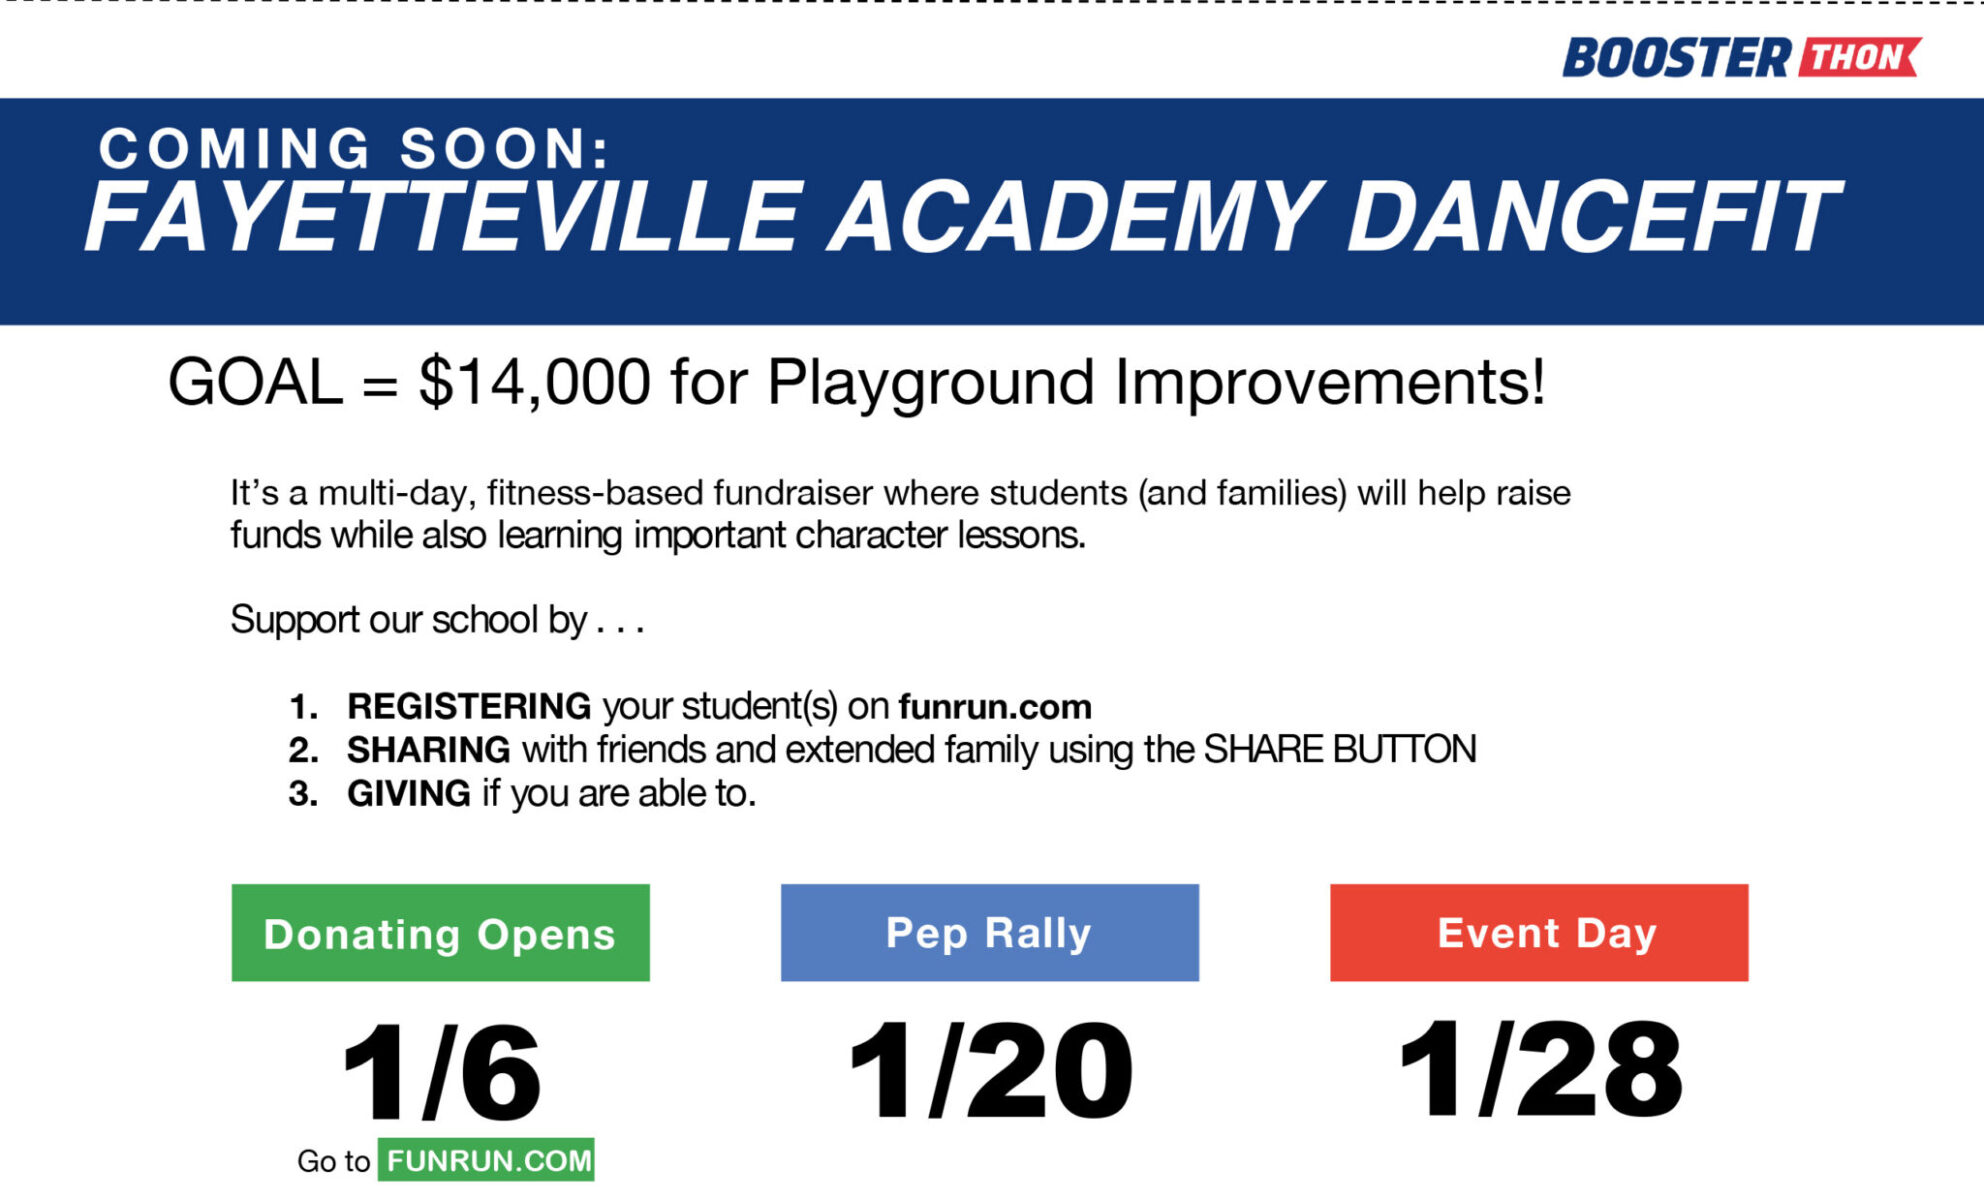 Fayetteville Academy Dance Fit Fundraiser